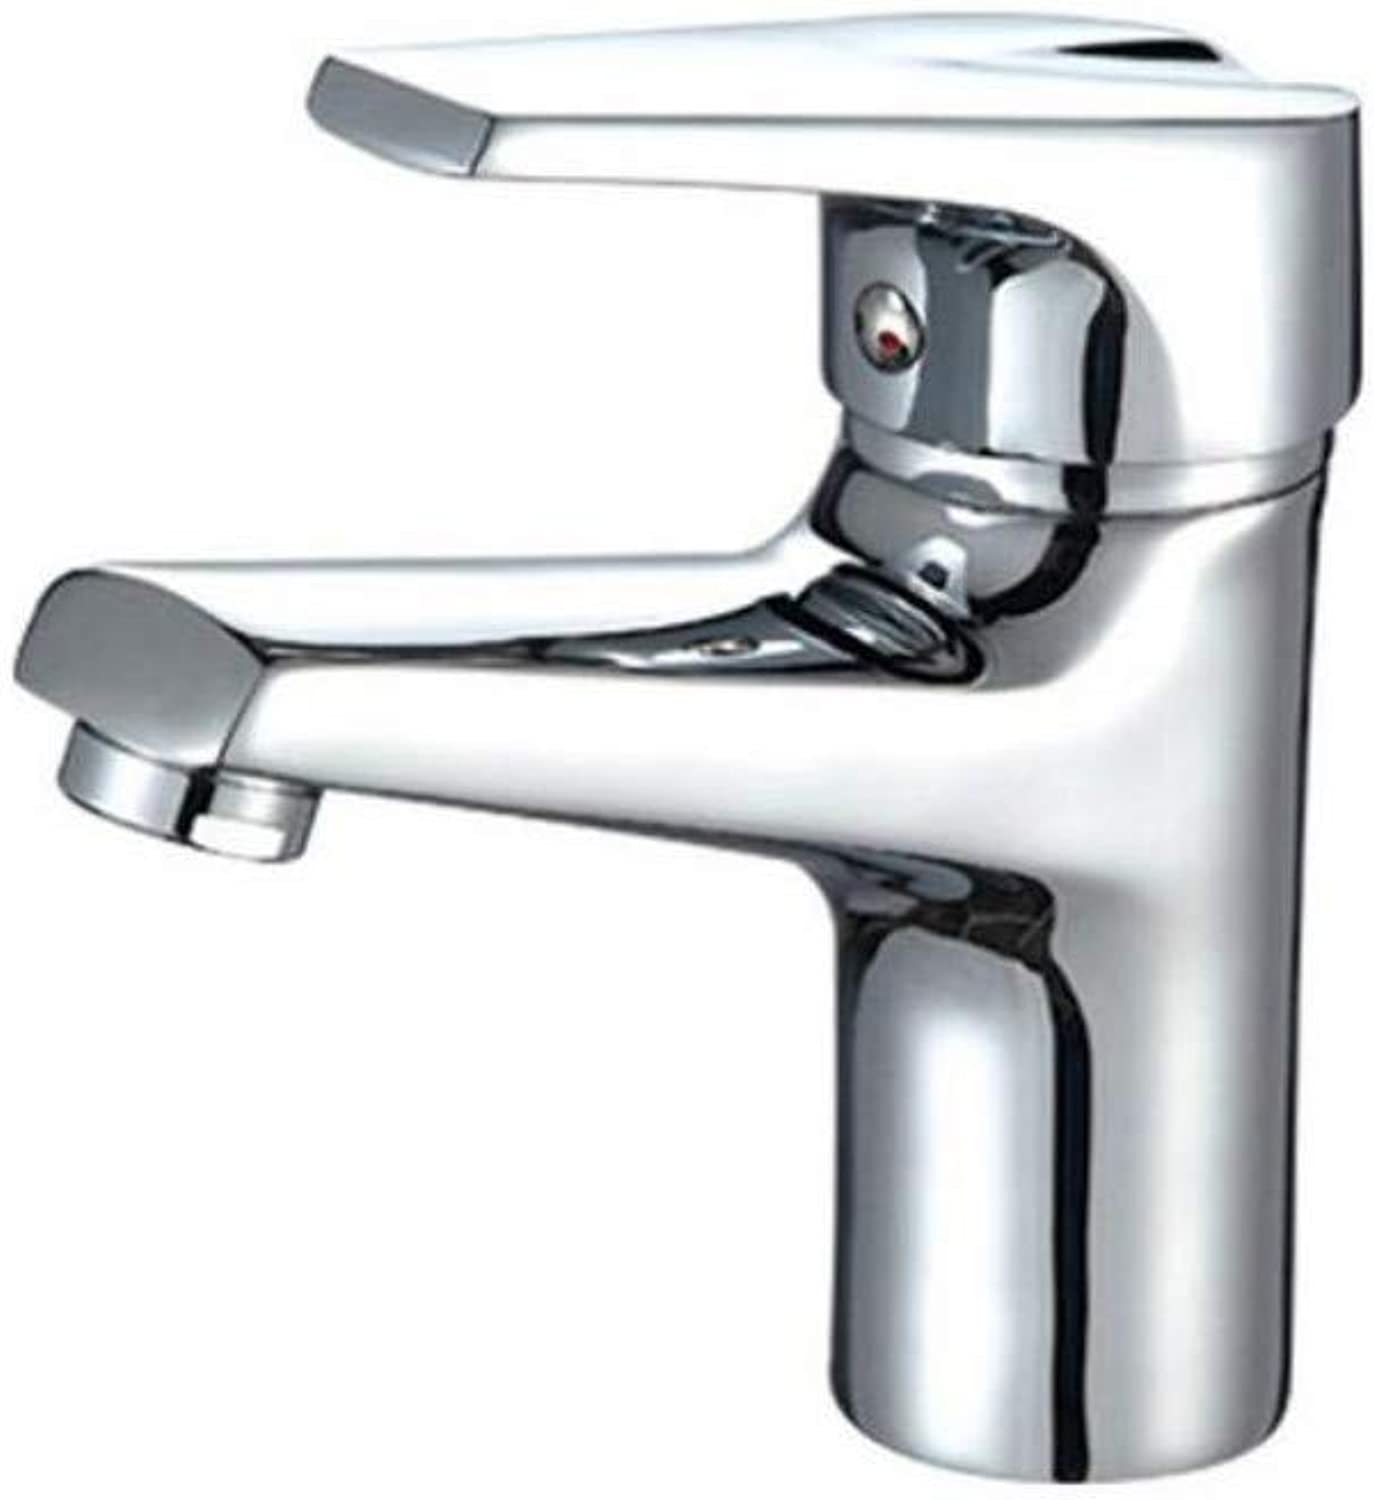 Bathroom Faucet Copper Hot and Cold Kitchen Sink Taps Kitchen Faucet Electroplated Copper Basin